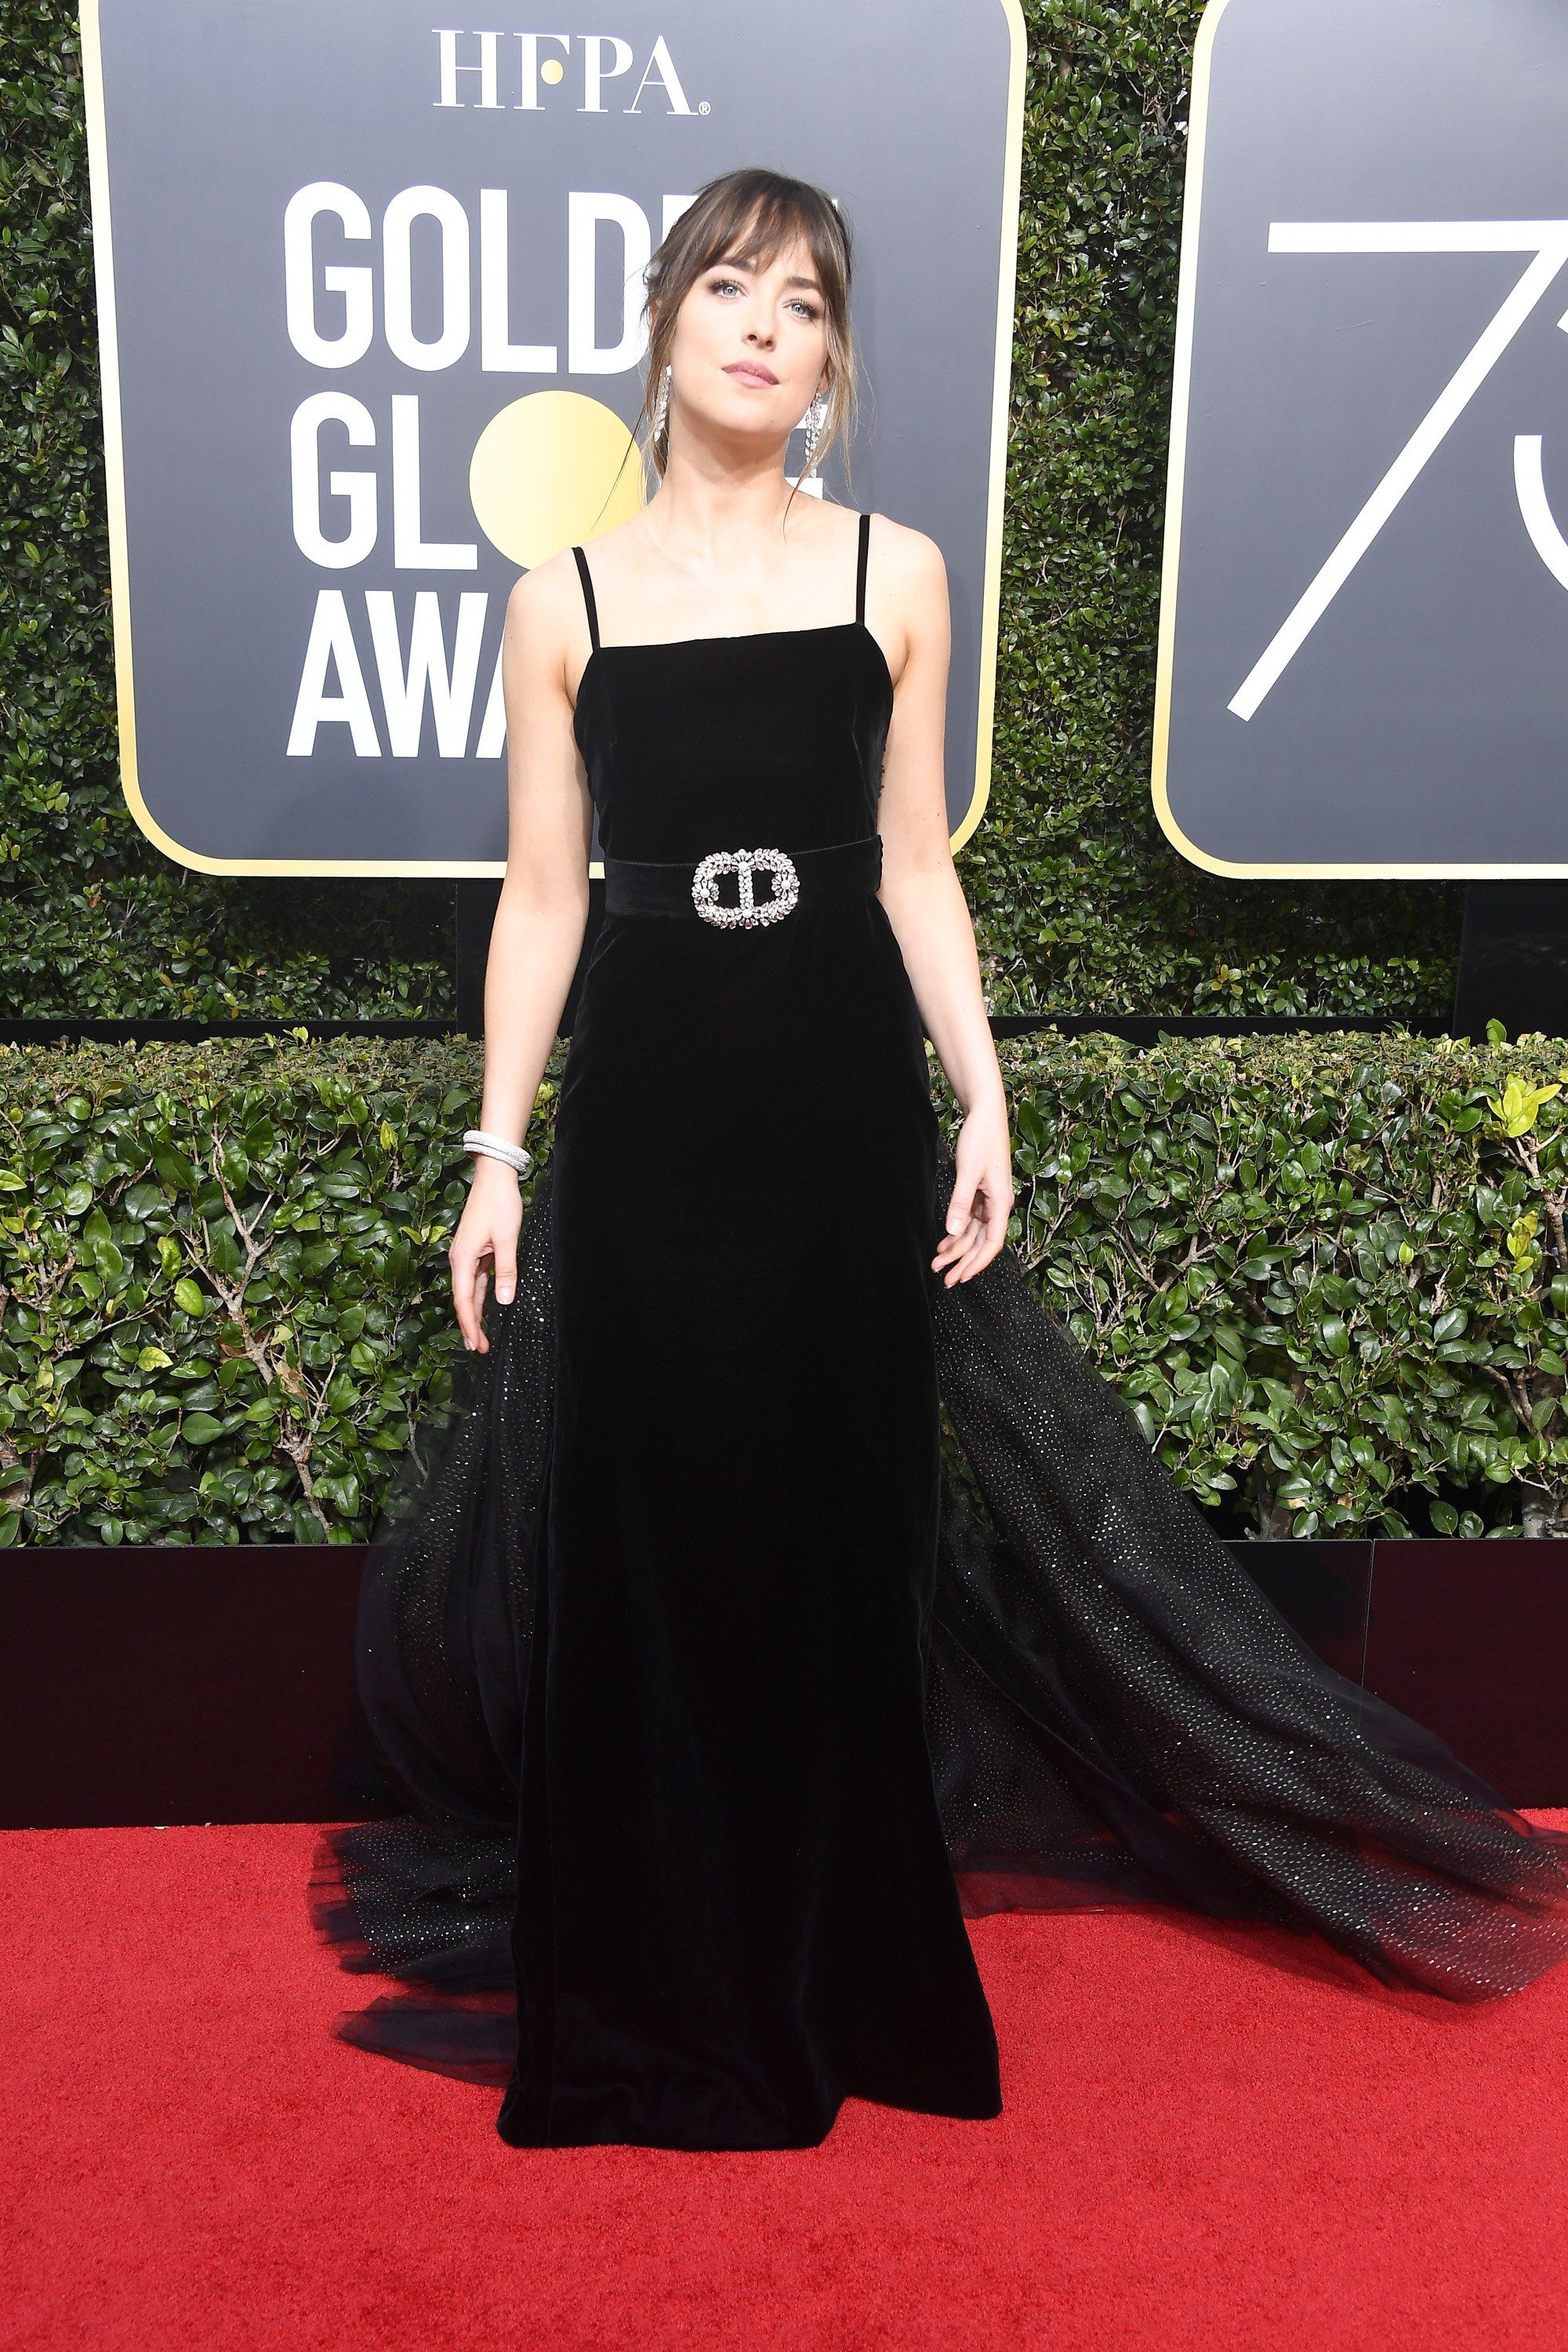 Golden Globes 2018 Fashion Live From The Red Carpet Nice Dresses Golden Globes Dresses Fashion